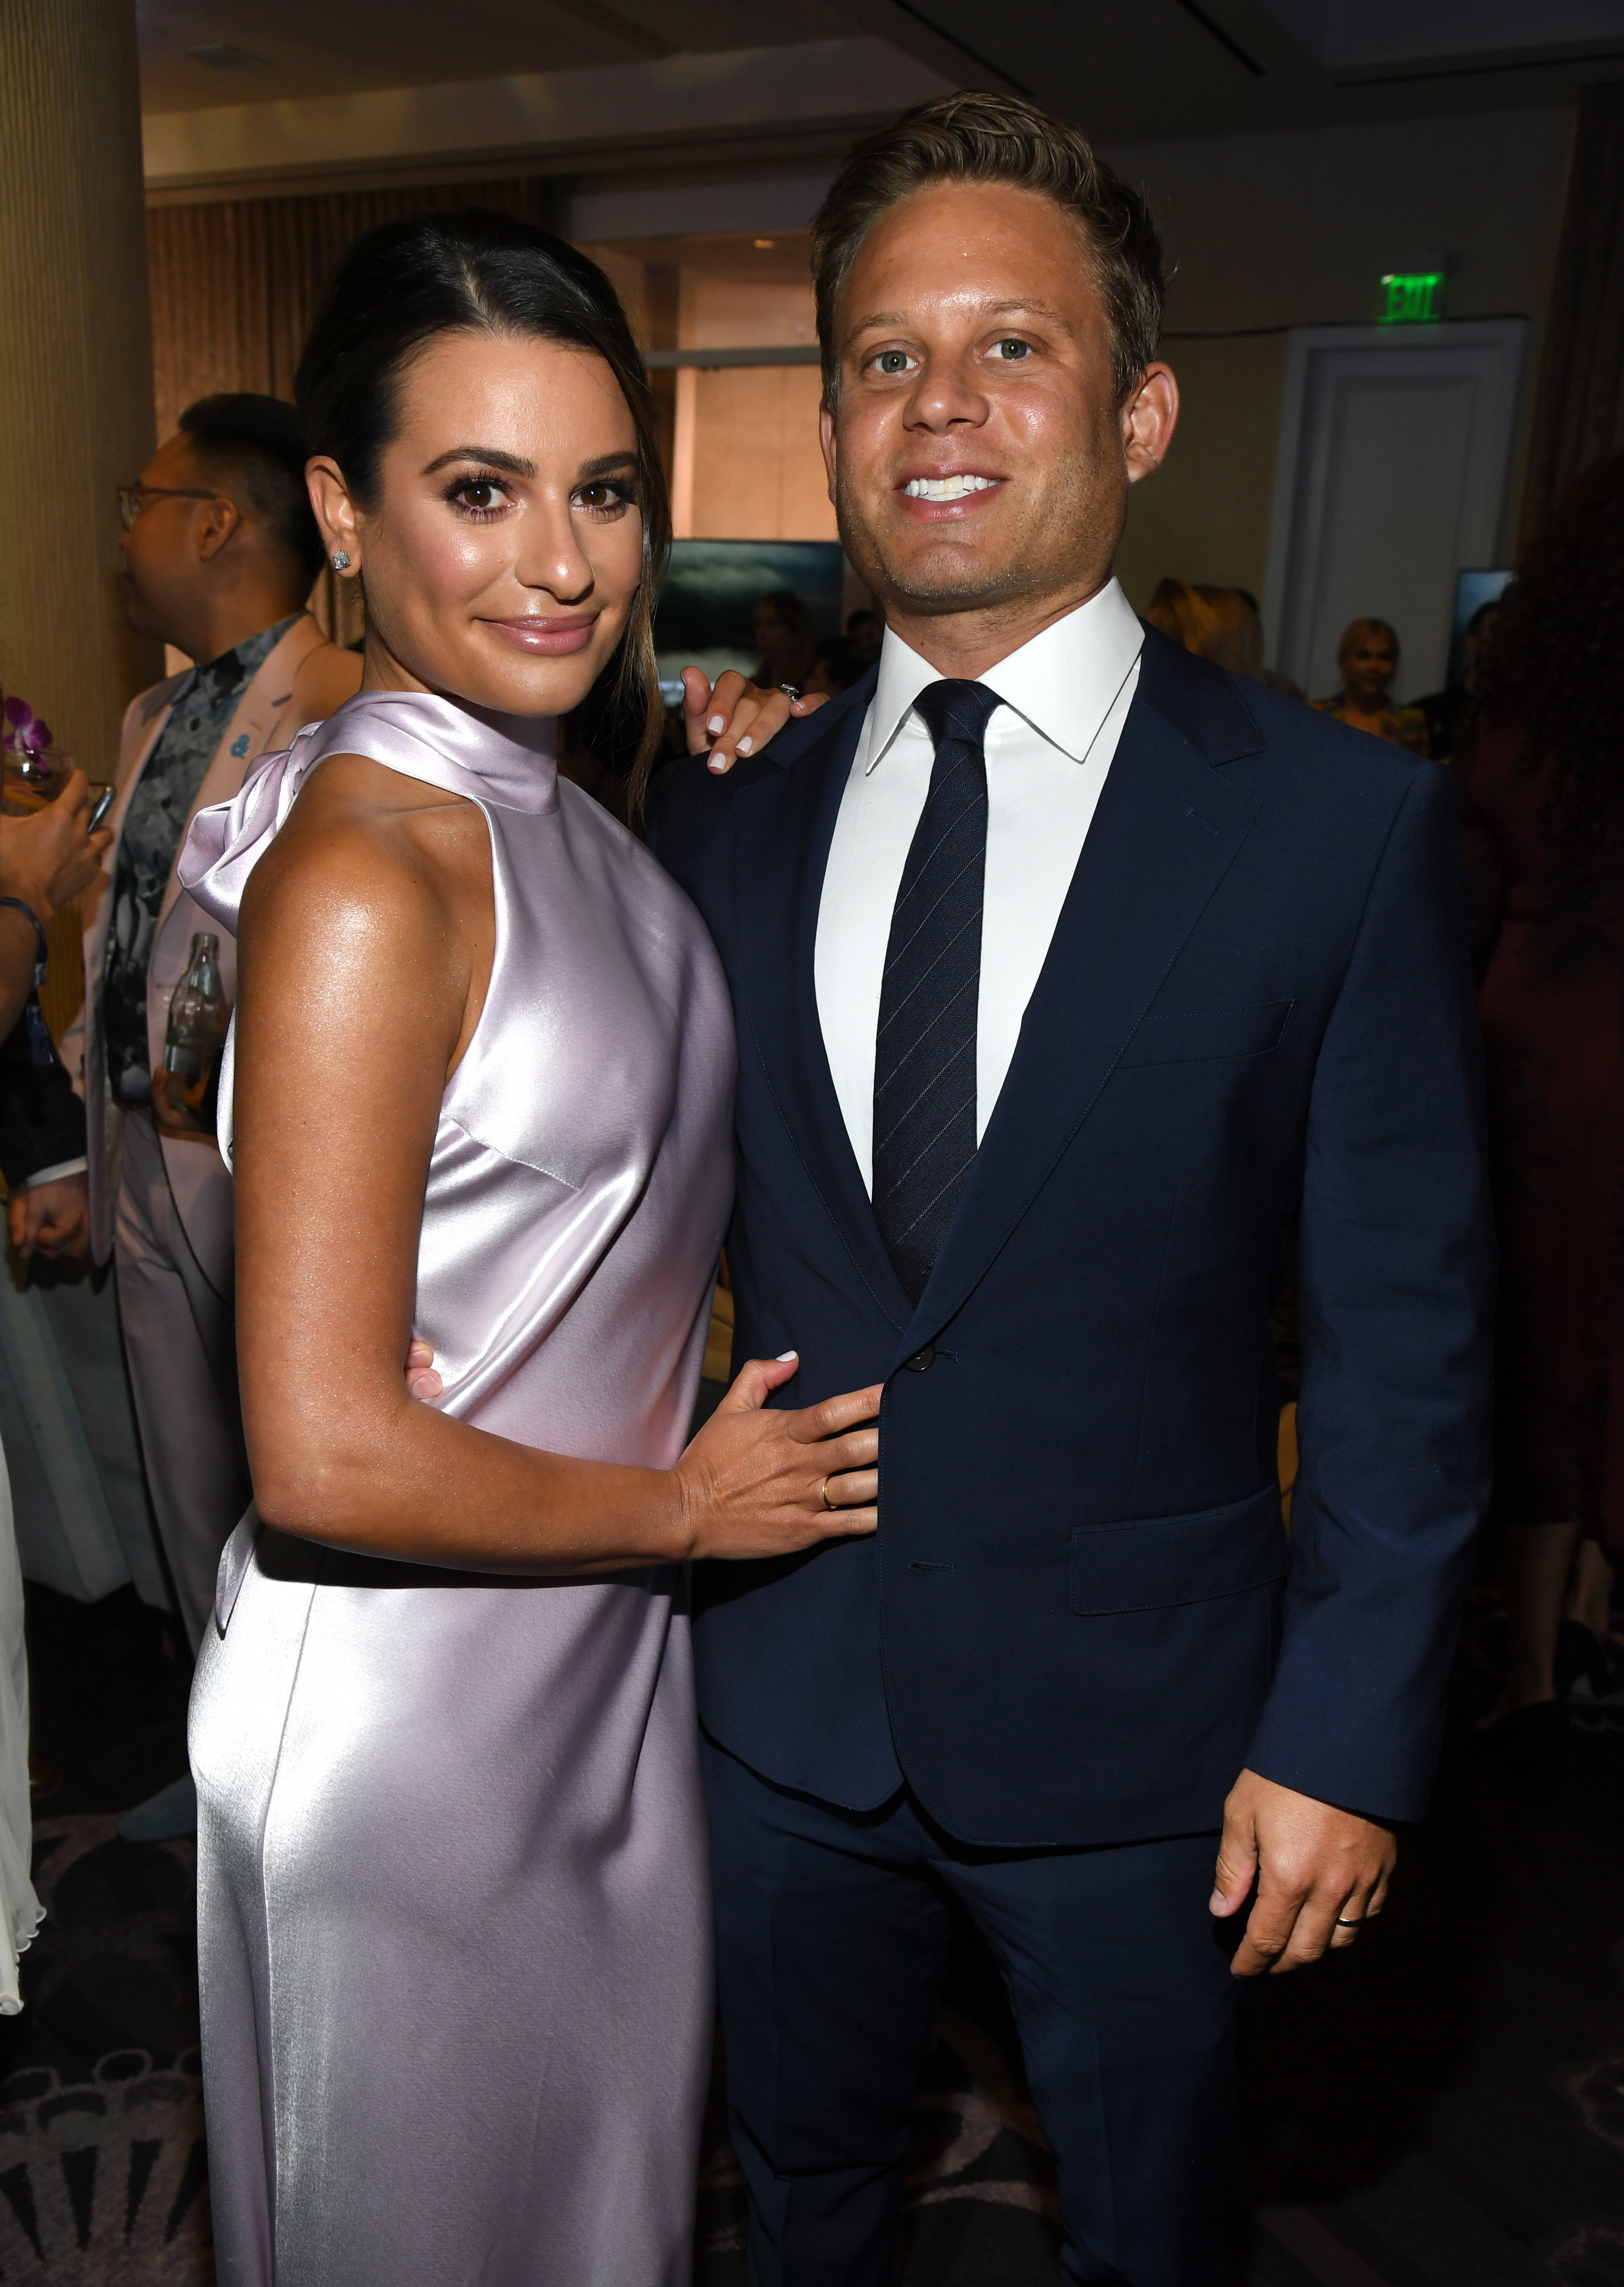 Lea Michele and Zandy Reich attend the 30th Annual GLAAD Media Awards Los Angeles at the Beverly Hilton hotel on March 28, 2019.